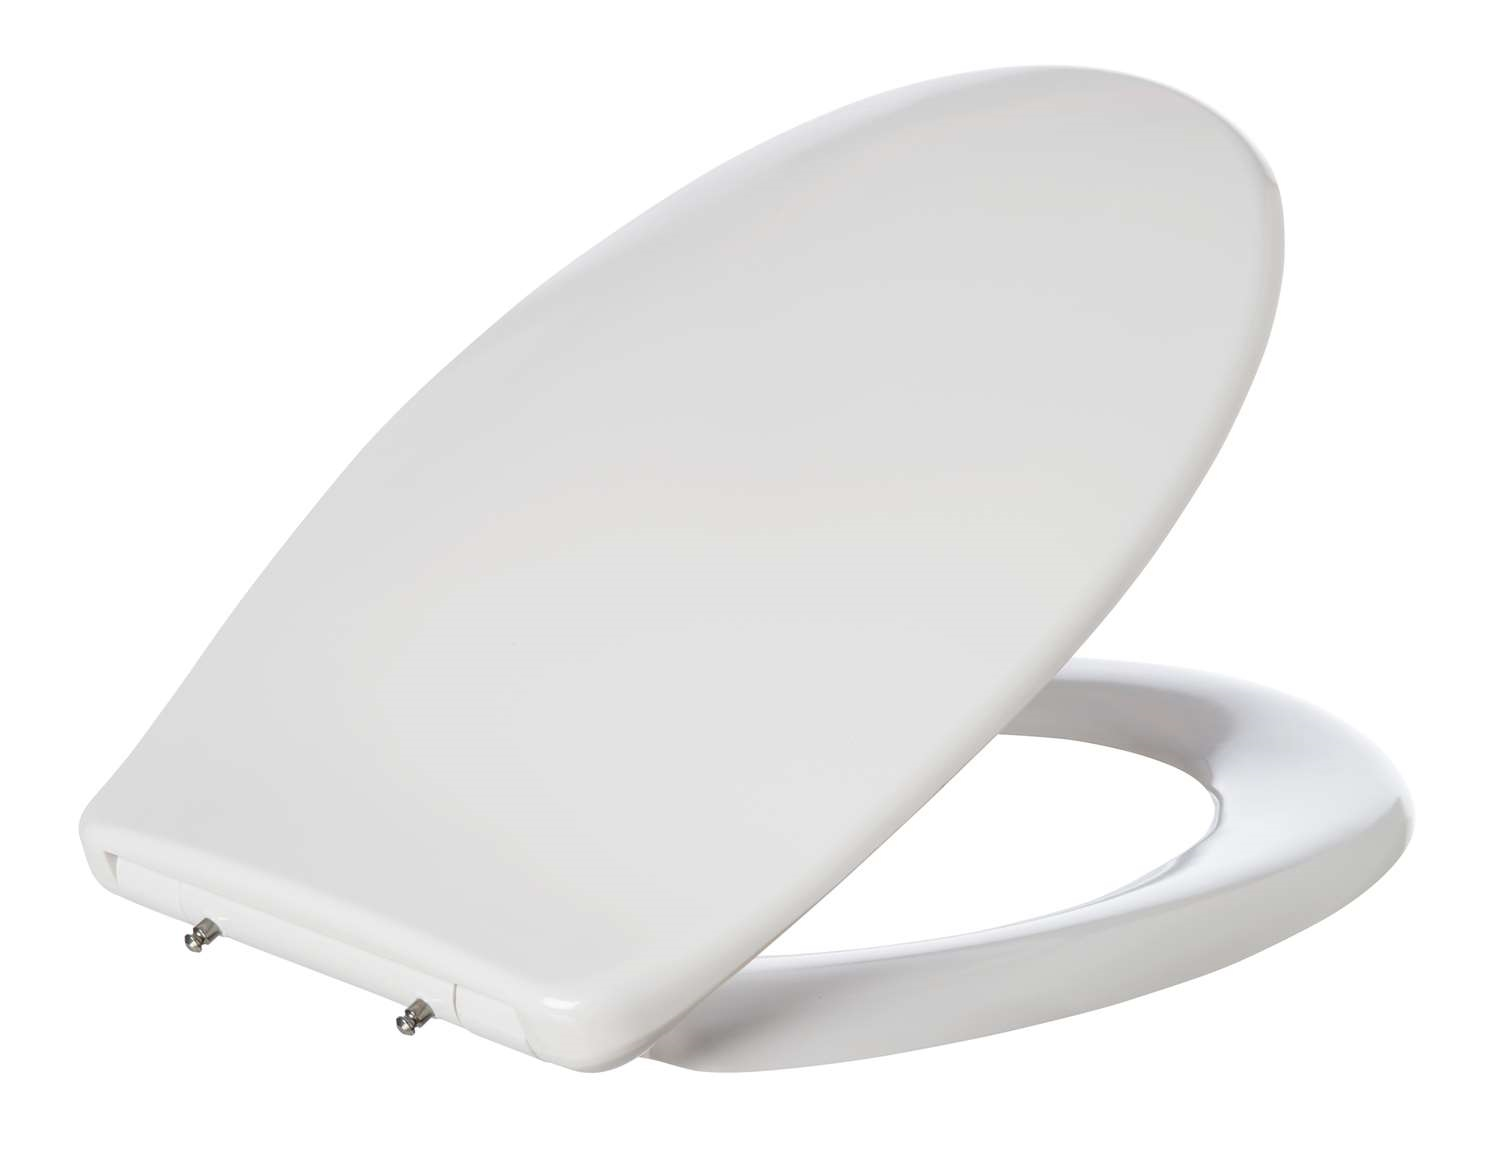 Strange Toilet Seat Toyma Gmtry Best Dining Table And Chair Ideas Images Gmtryco